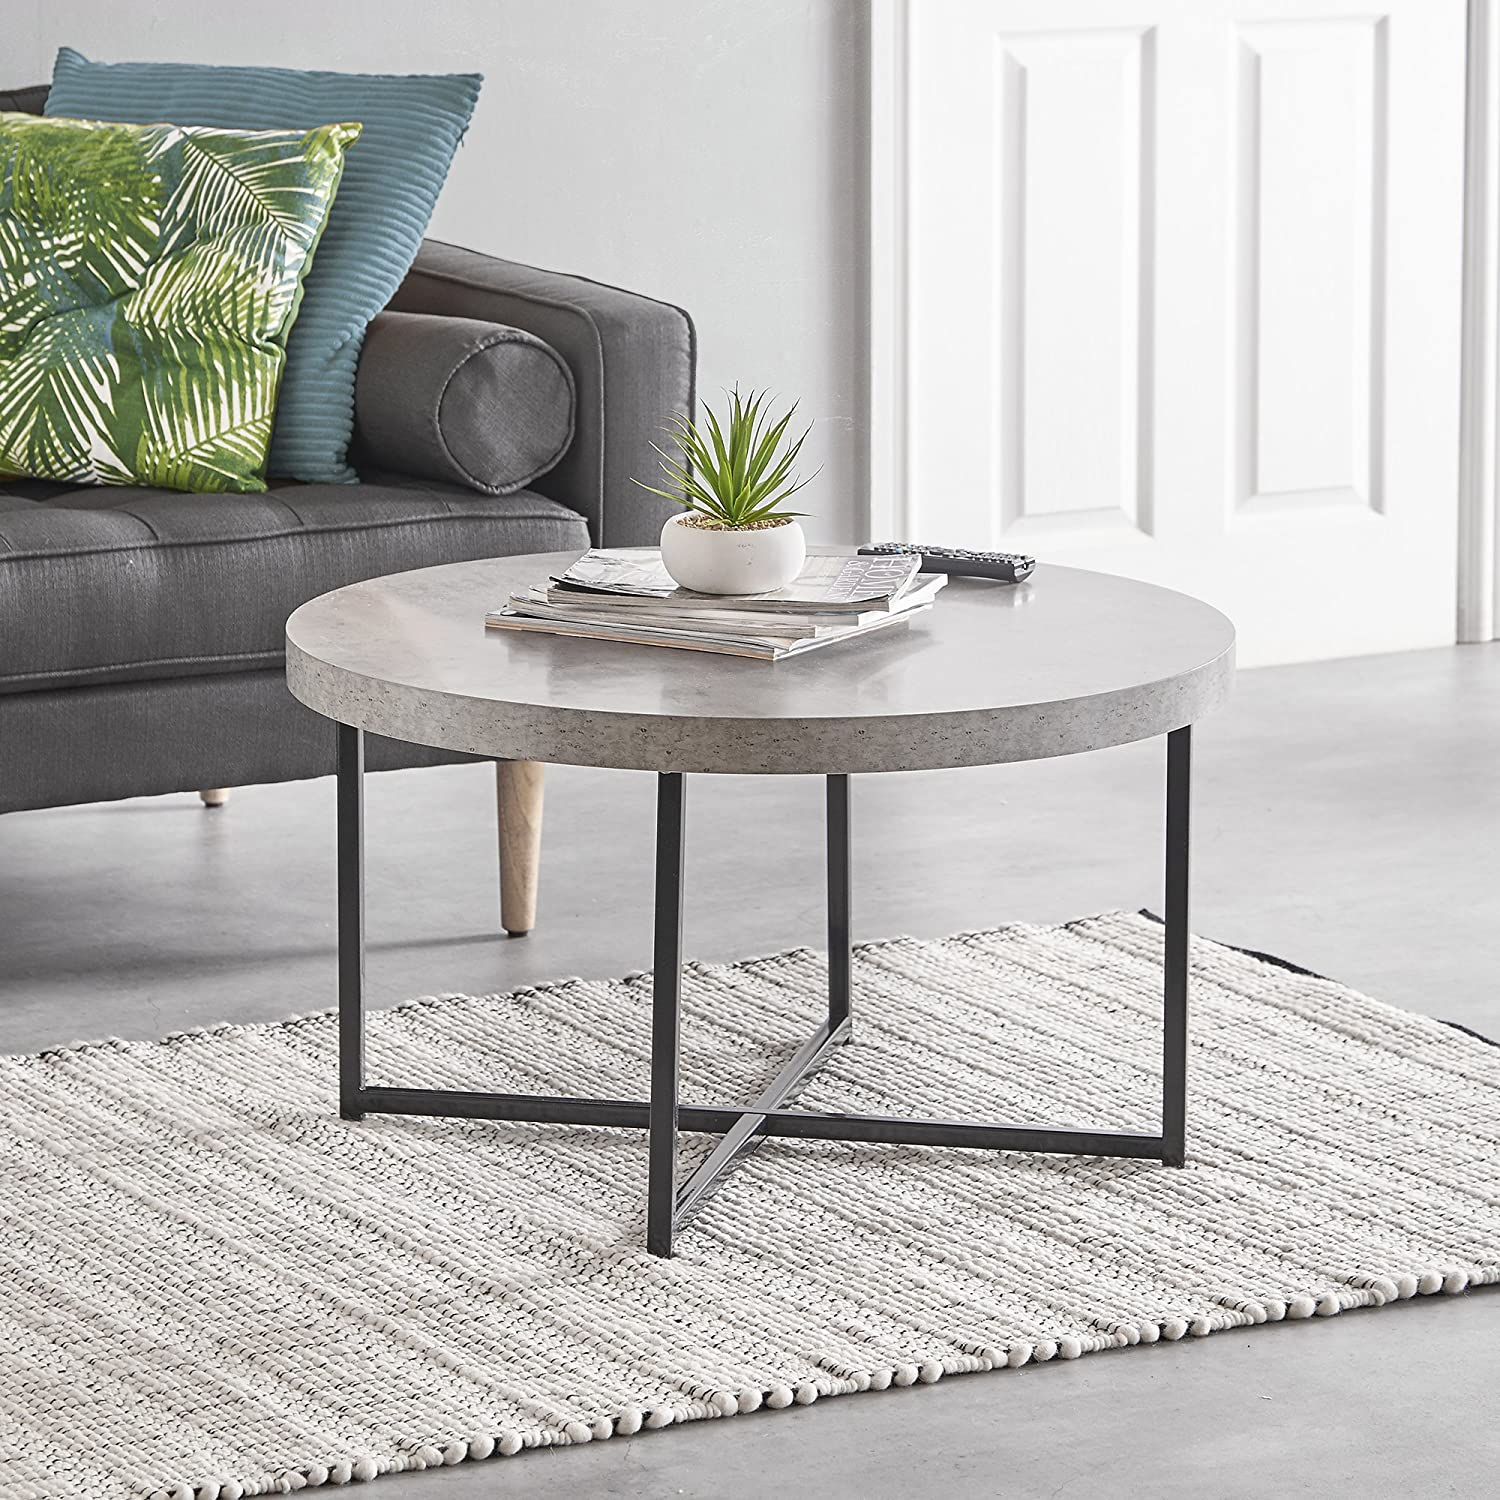 b8aa85f74cc497 VonHaus Concrete-Look Round Coffee Table 80cm Diameter - Modern Lightweight  Metal-Effect Furniture - for Bedside/Hallway/Living Room: Amazon.co.uk:  Kitchen ...